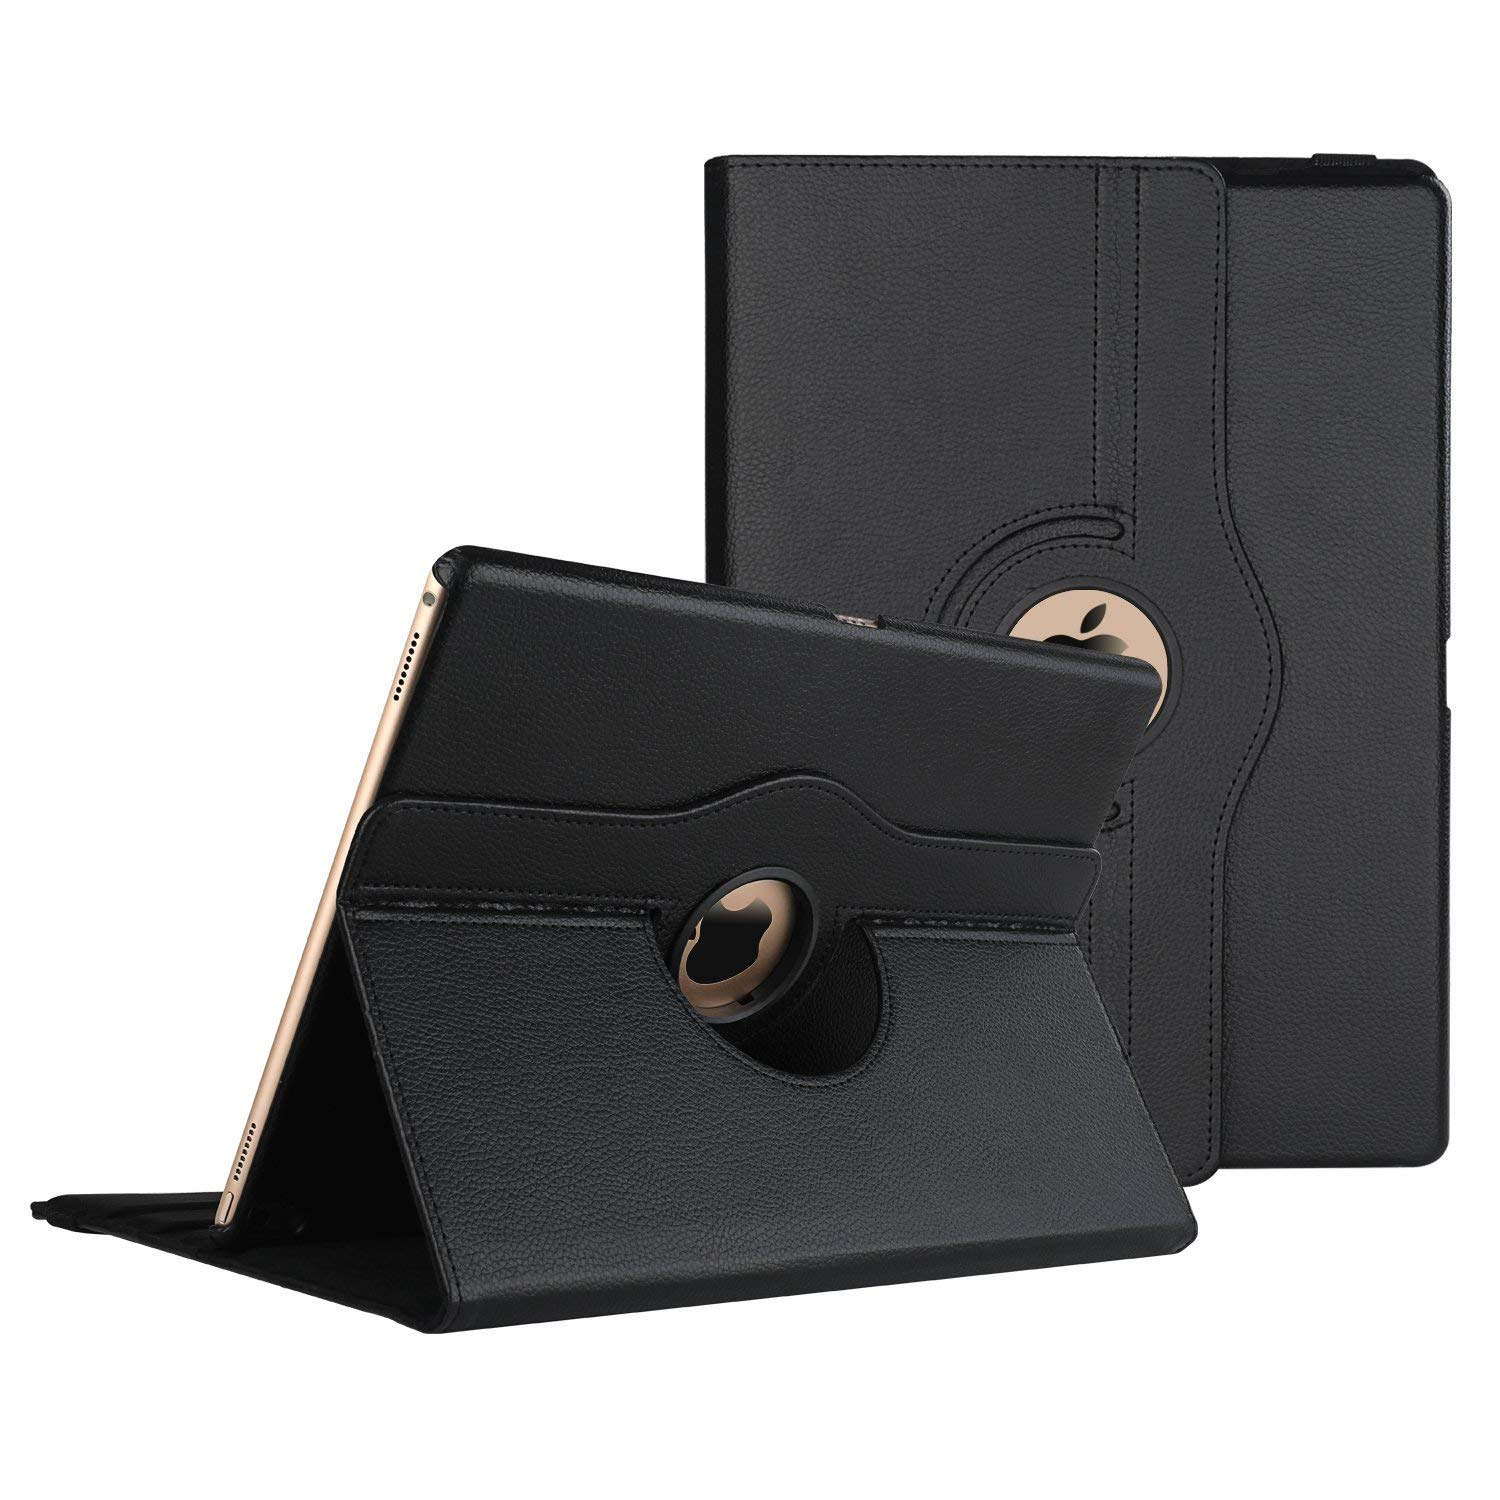 For Apple Ipad Pro 12.9 Cover Case 360 Rotating Smart Cover For Ipad PU Leather Protective Case Tablet Case For Ipad Pro 12.9